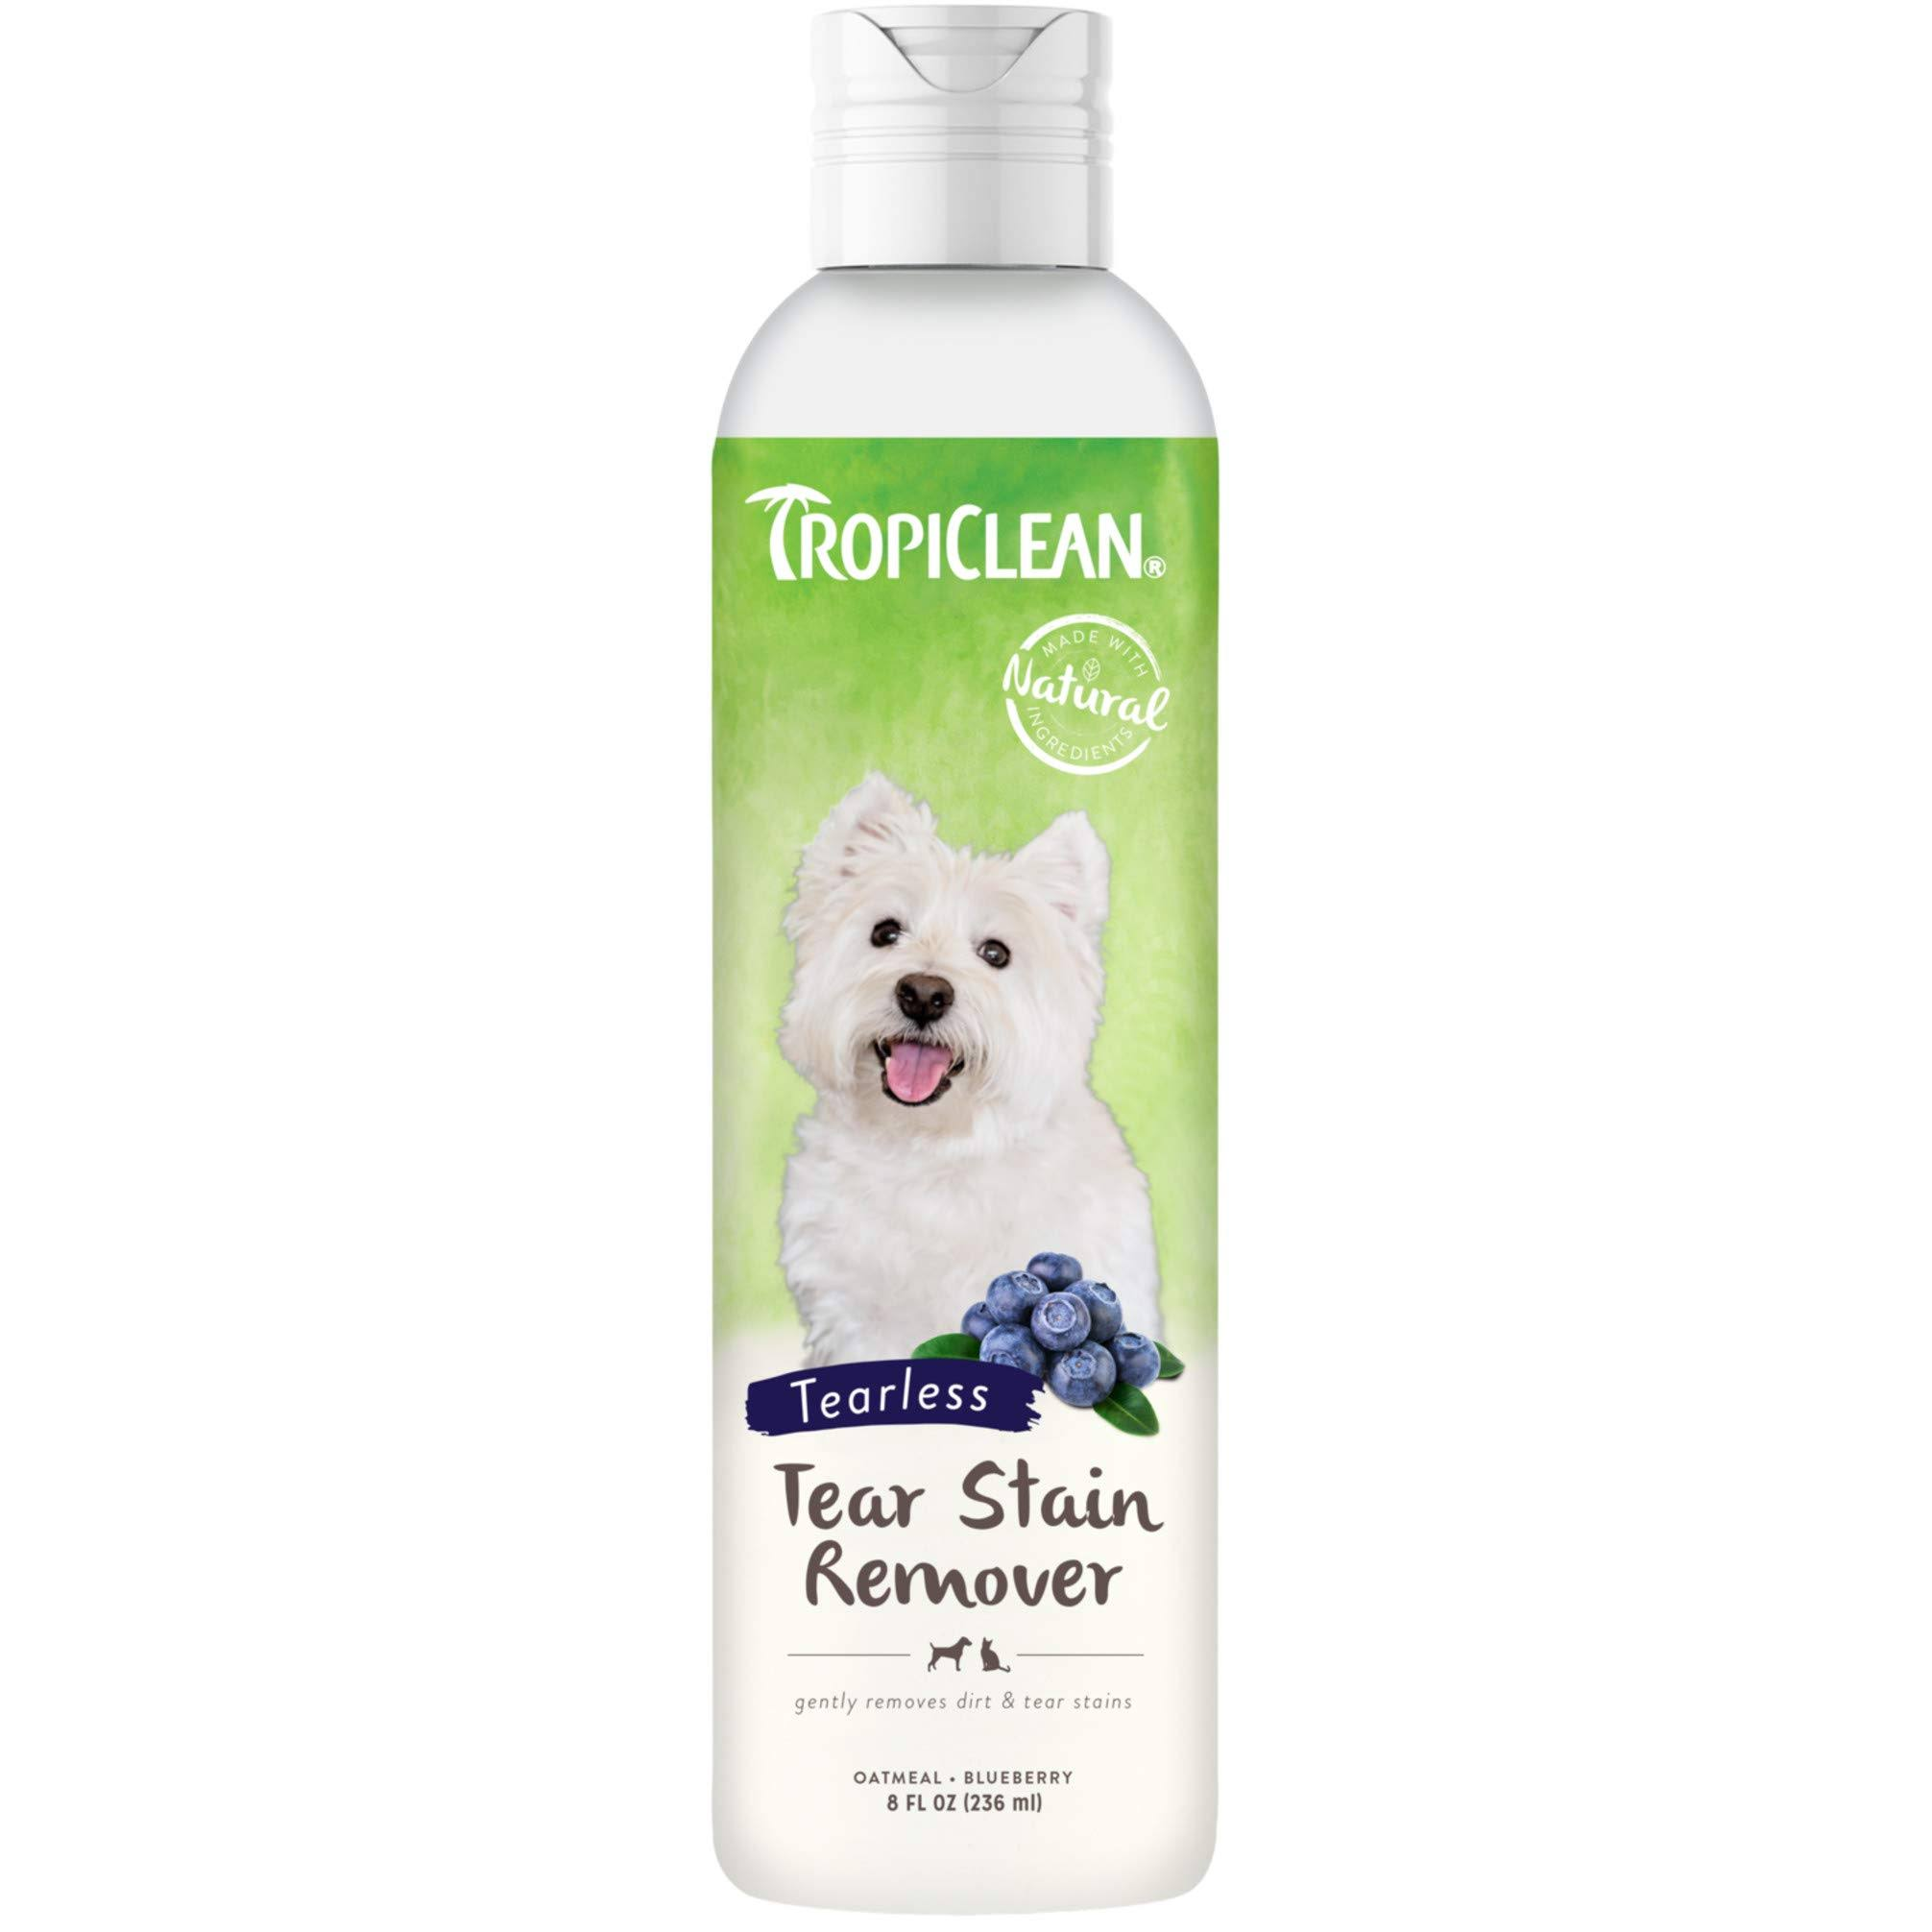 8 oz Tropiclean Tear Stain Remover